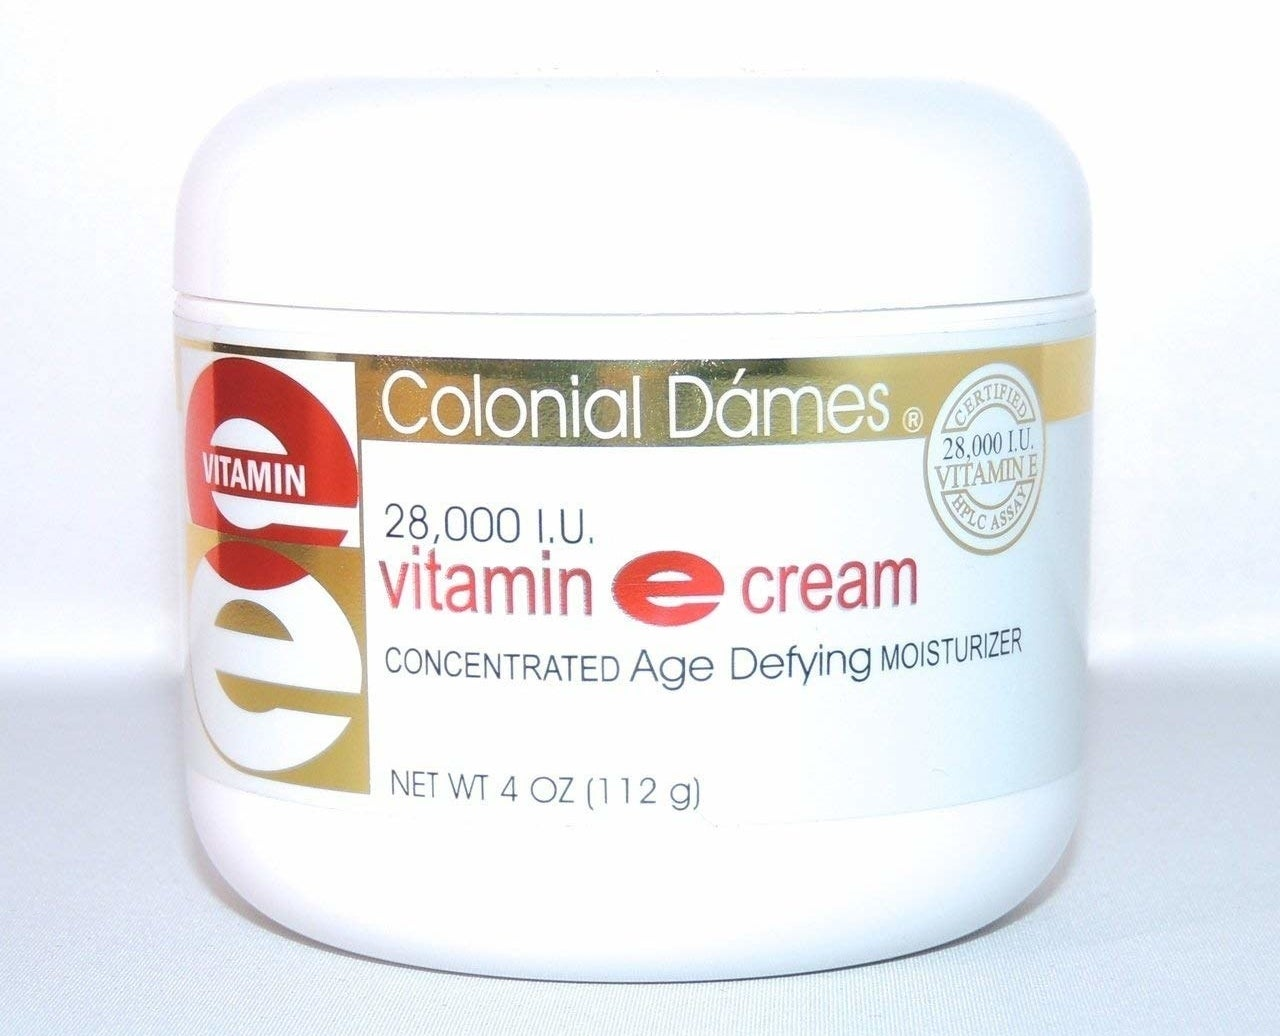 bottle of colonial dames vitamin E cream